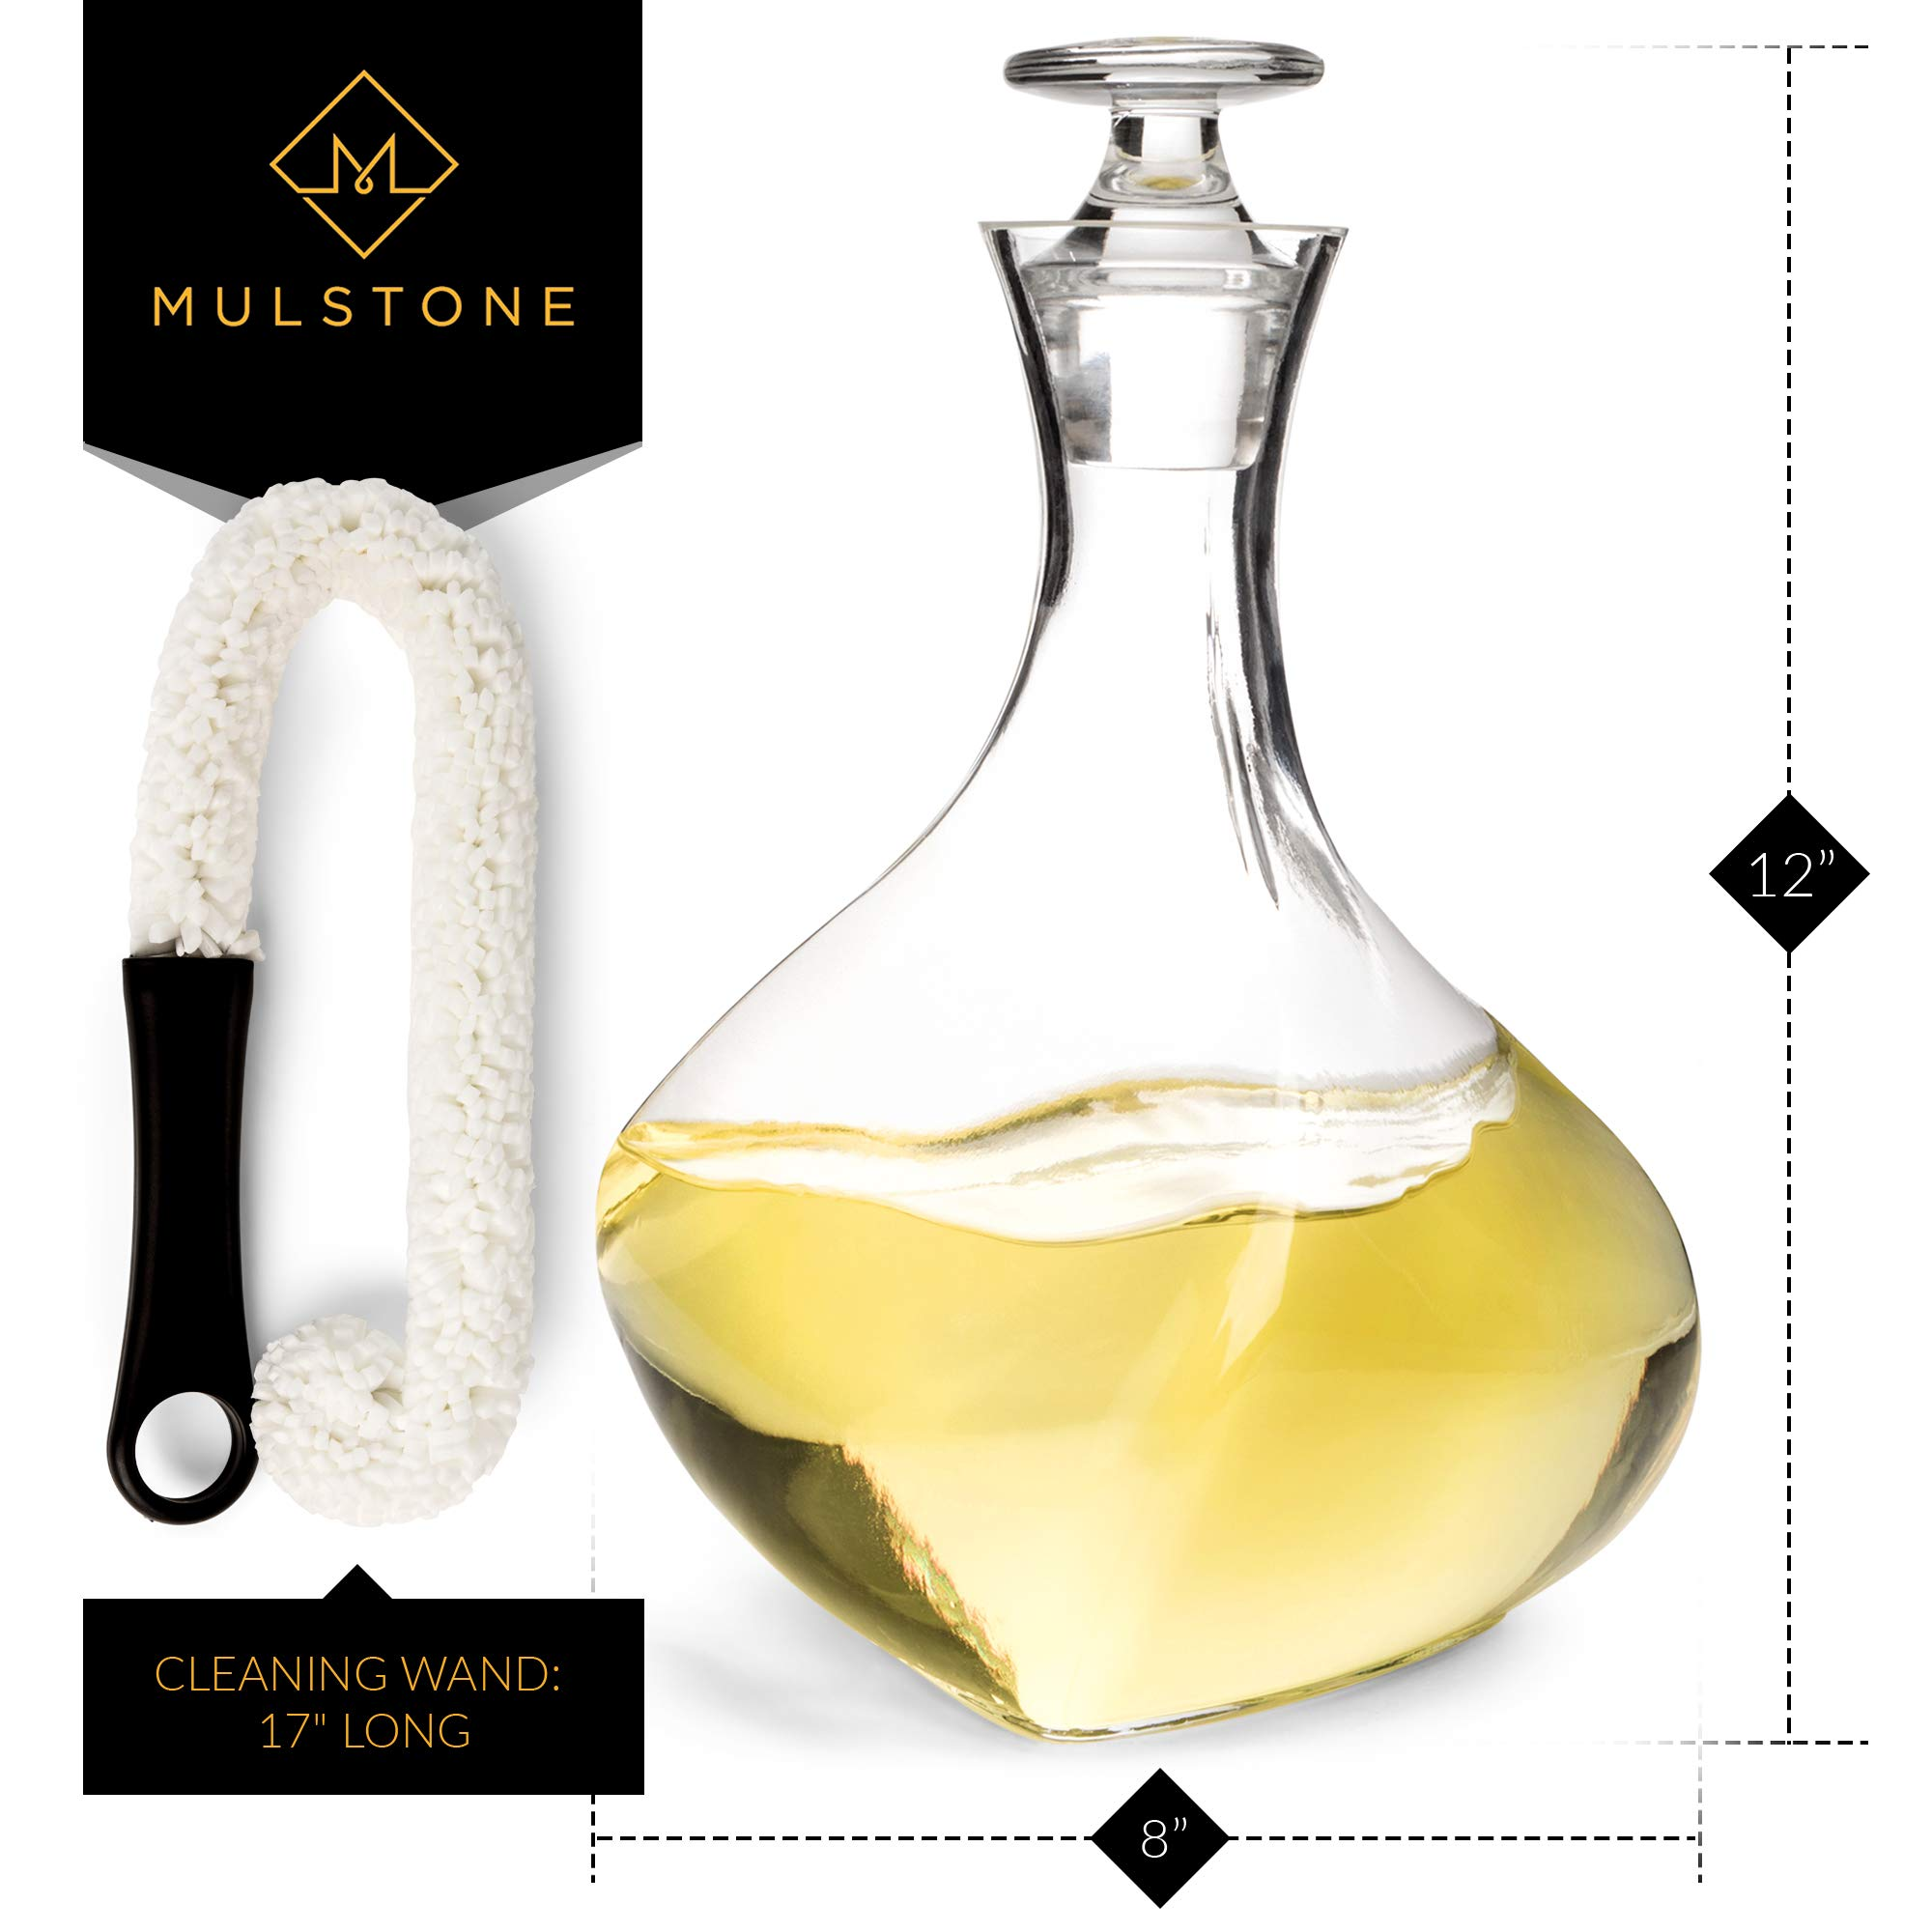 Prime Sale Day - MULSTONE - Apericena Wine Decanter & Aerating Carafe Set | 100% Lead-Free | Perfect Gift for Liquor Lovers | With Stopper & Free Cleaner | For Wines, Vodka & Whiskey